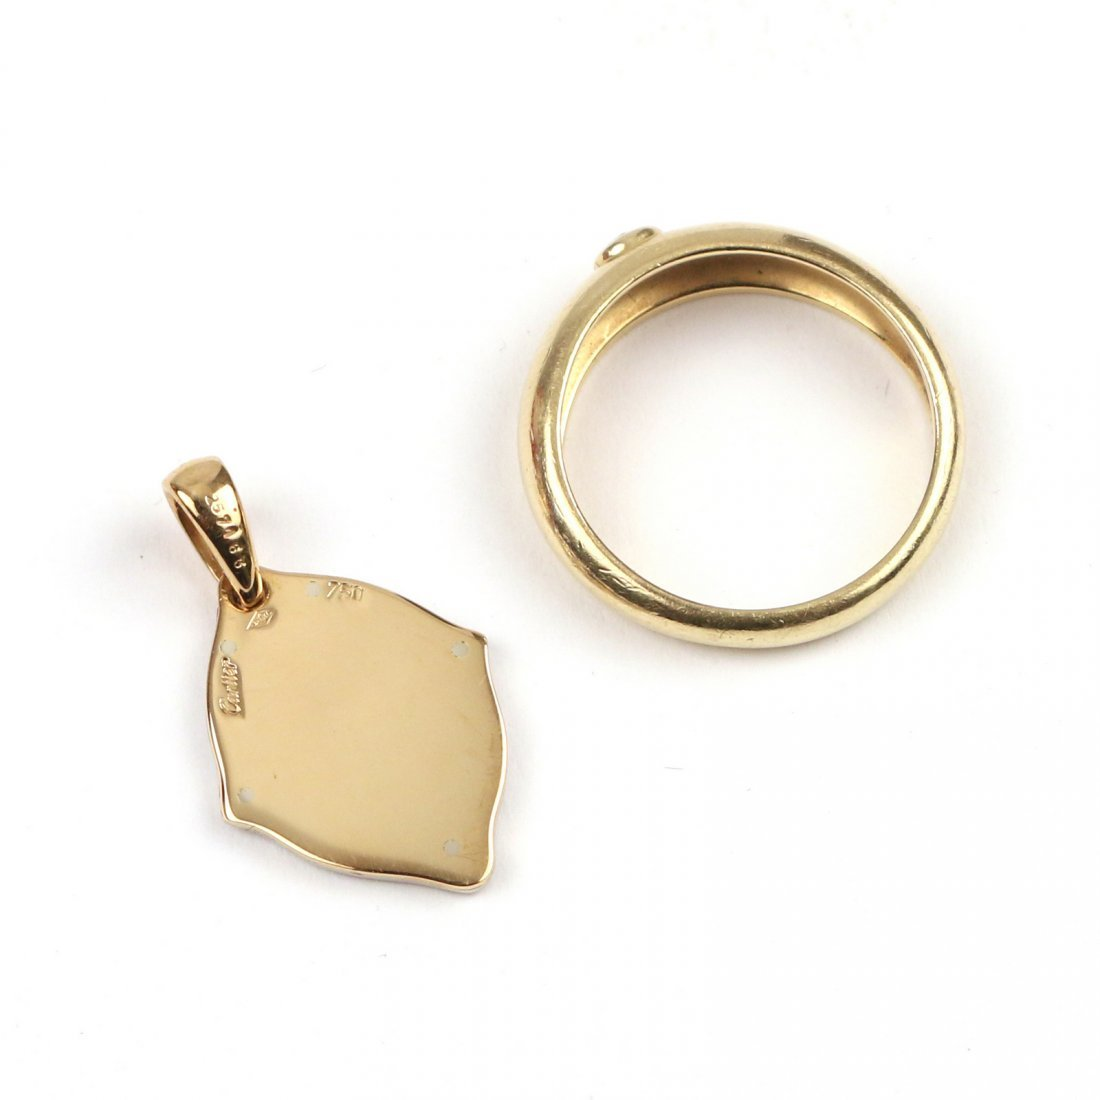 (2pc) BOXED CARTIER GOLD JEWELRY - 3